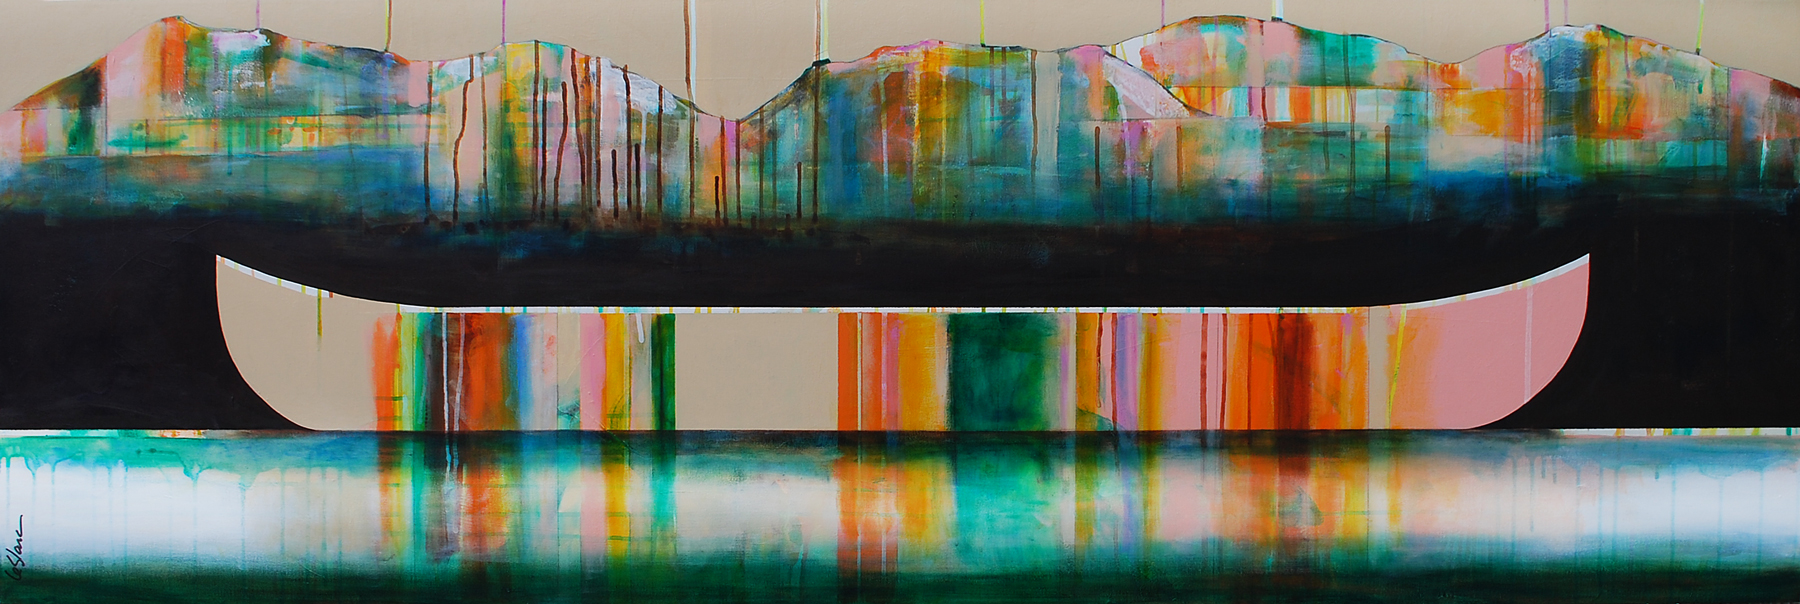 Lac couleur émeraude, mixed media canoe painting by Sylvain Leblanc | Effusion Art Gallery + Cast Glass Studio, Invermere BC